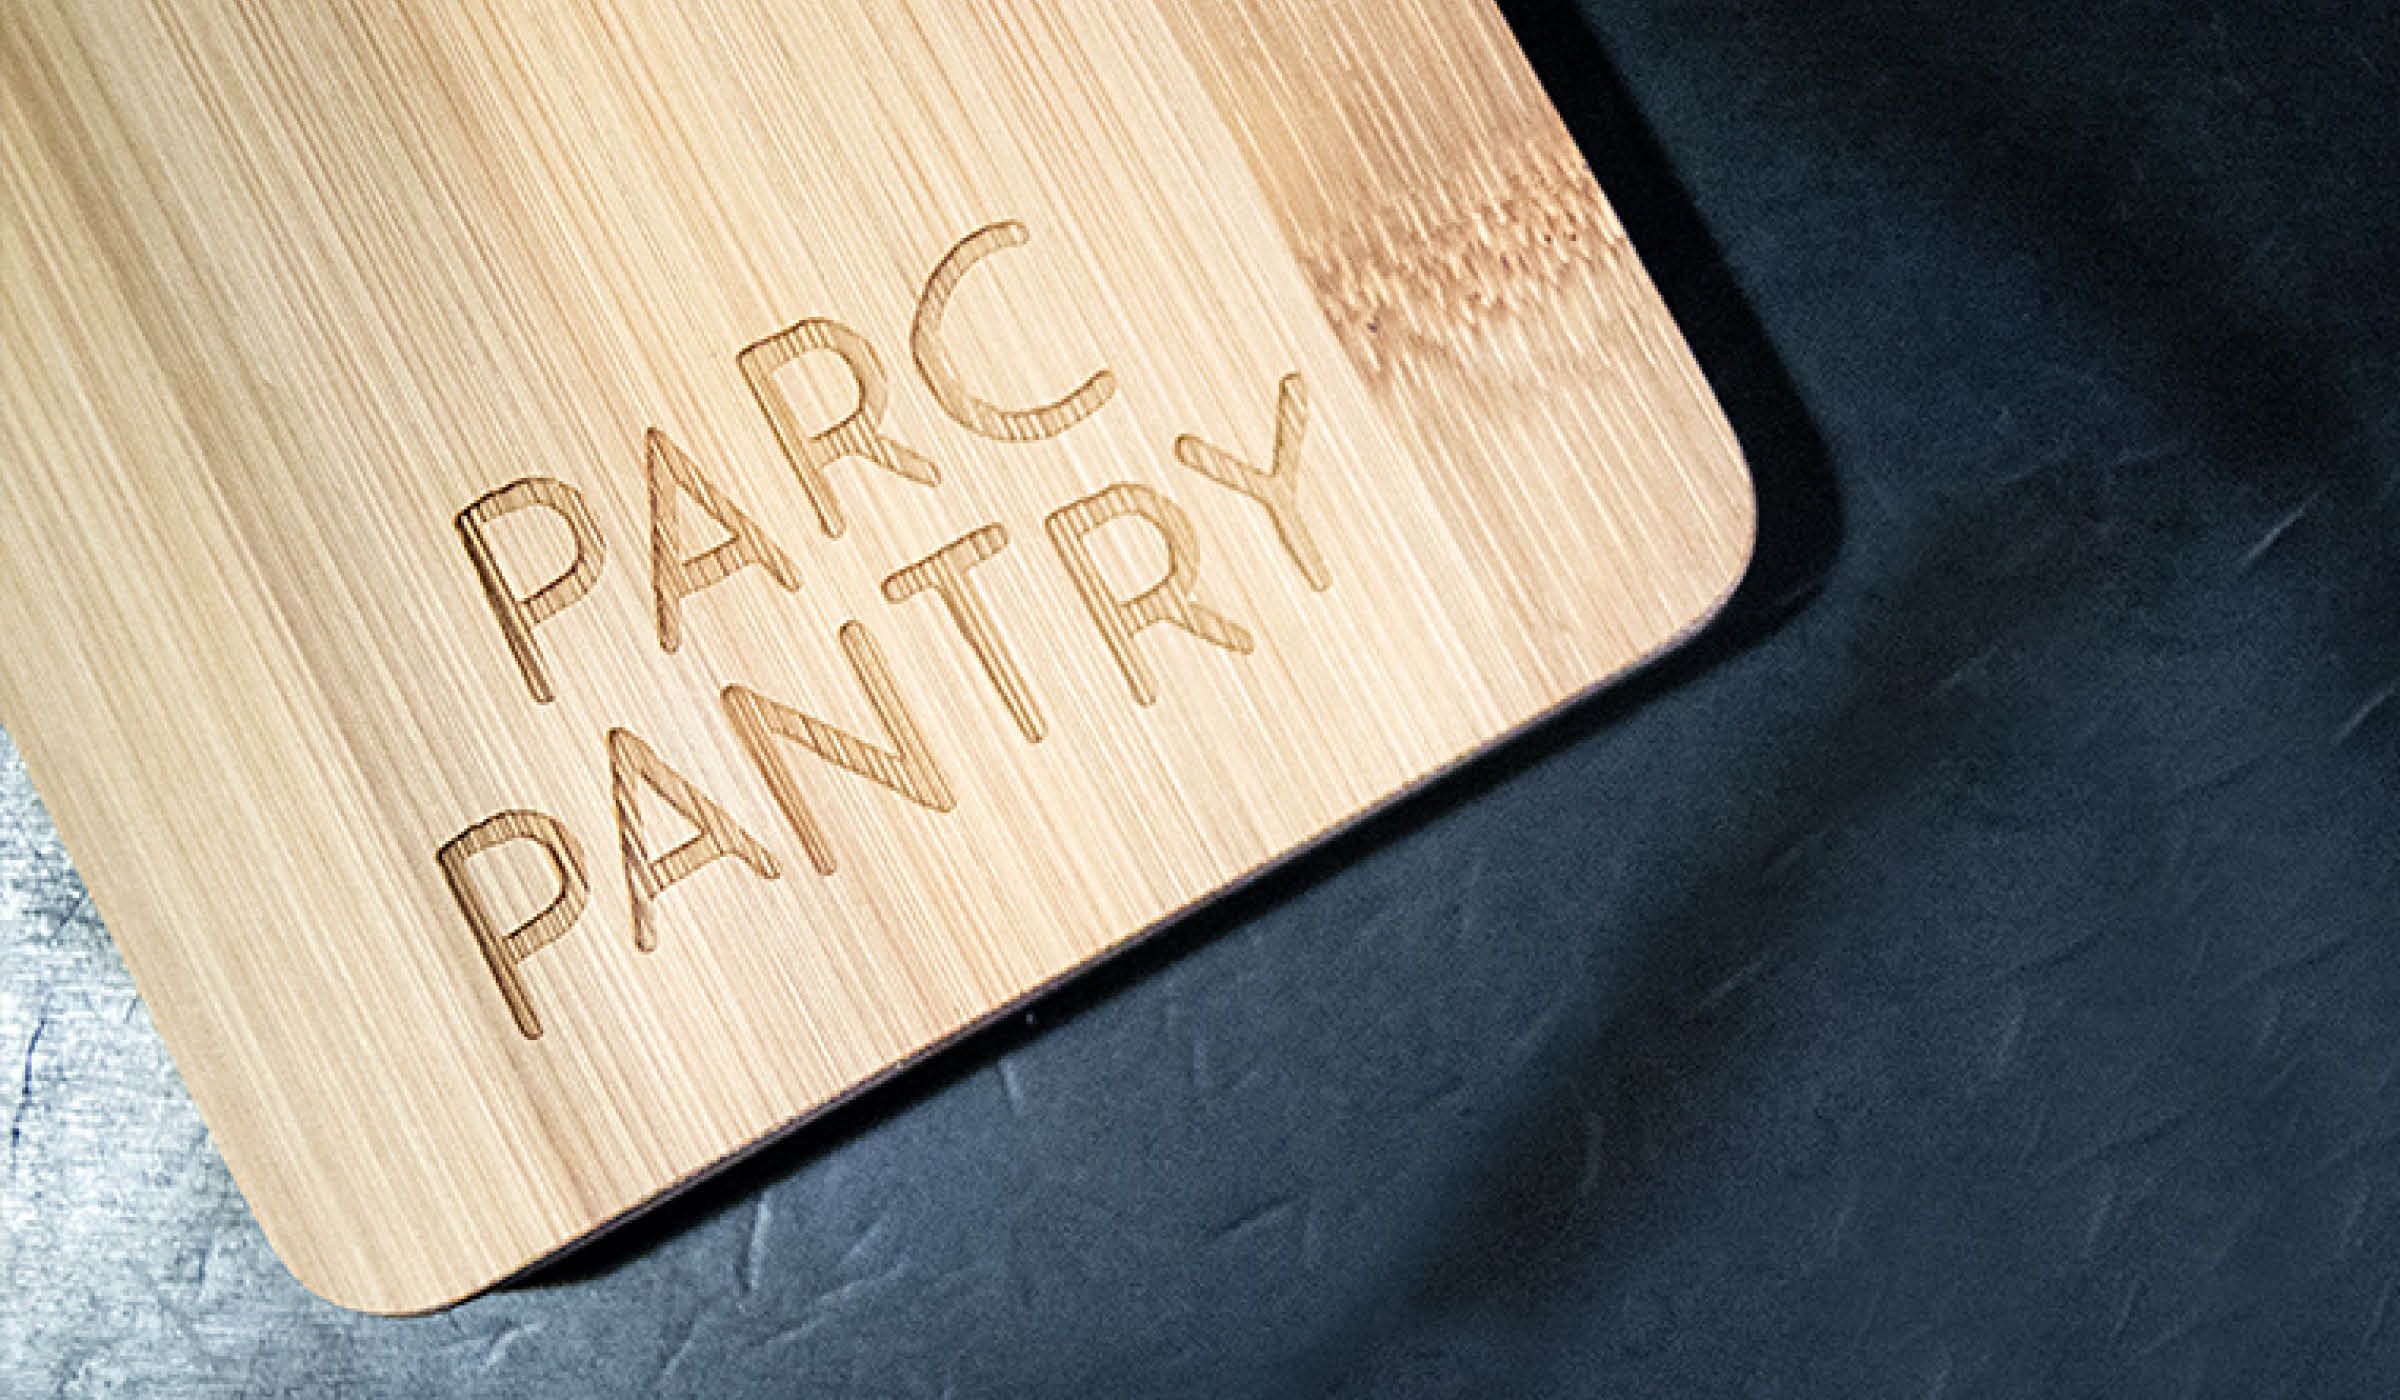 engraved logo design on a chopping board